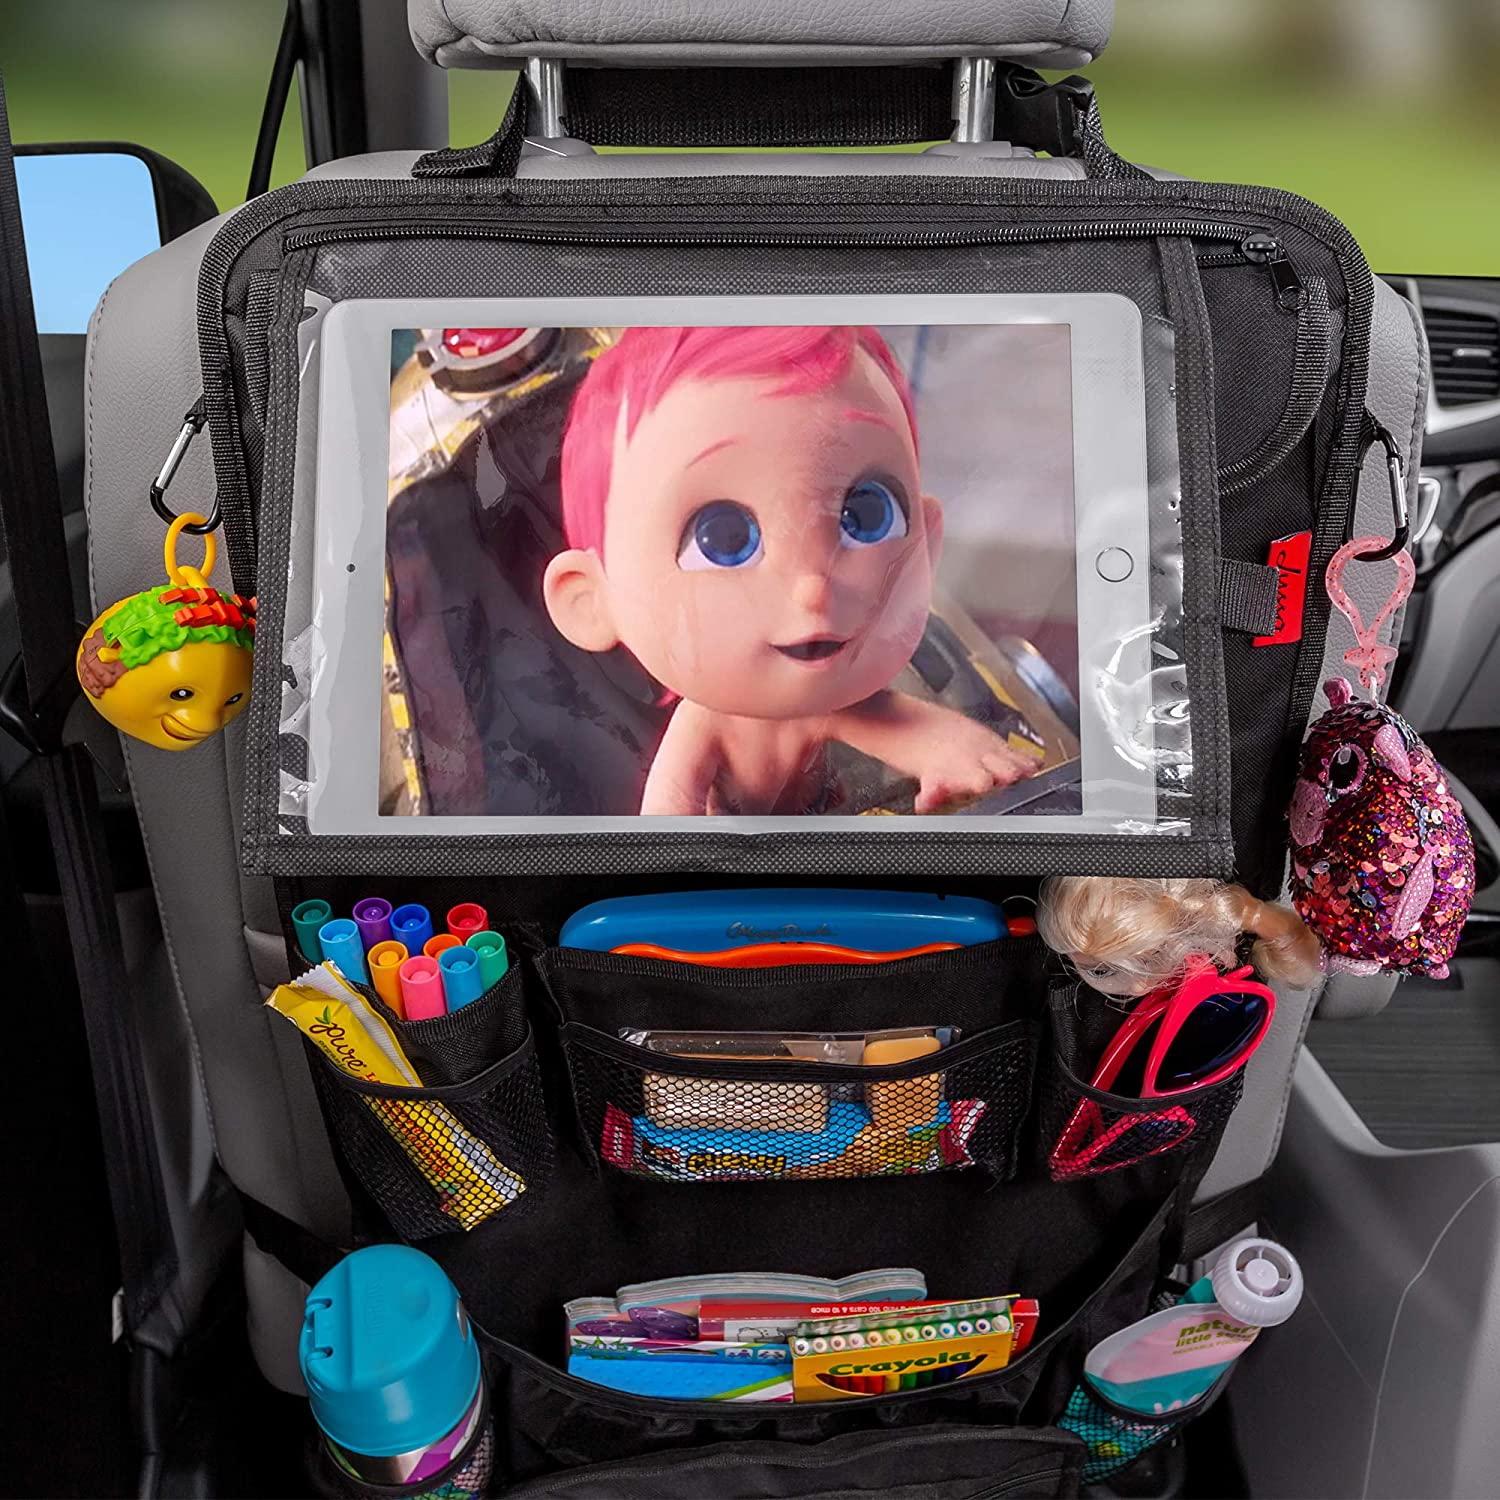 Reinforced Corners to Prevent Sag Car Back Seat Organizer with Larger Protection /& Storage Great Travel Accessory for Kids 12 Compartments including iPad Holder Eco Friendly Materials